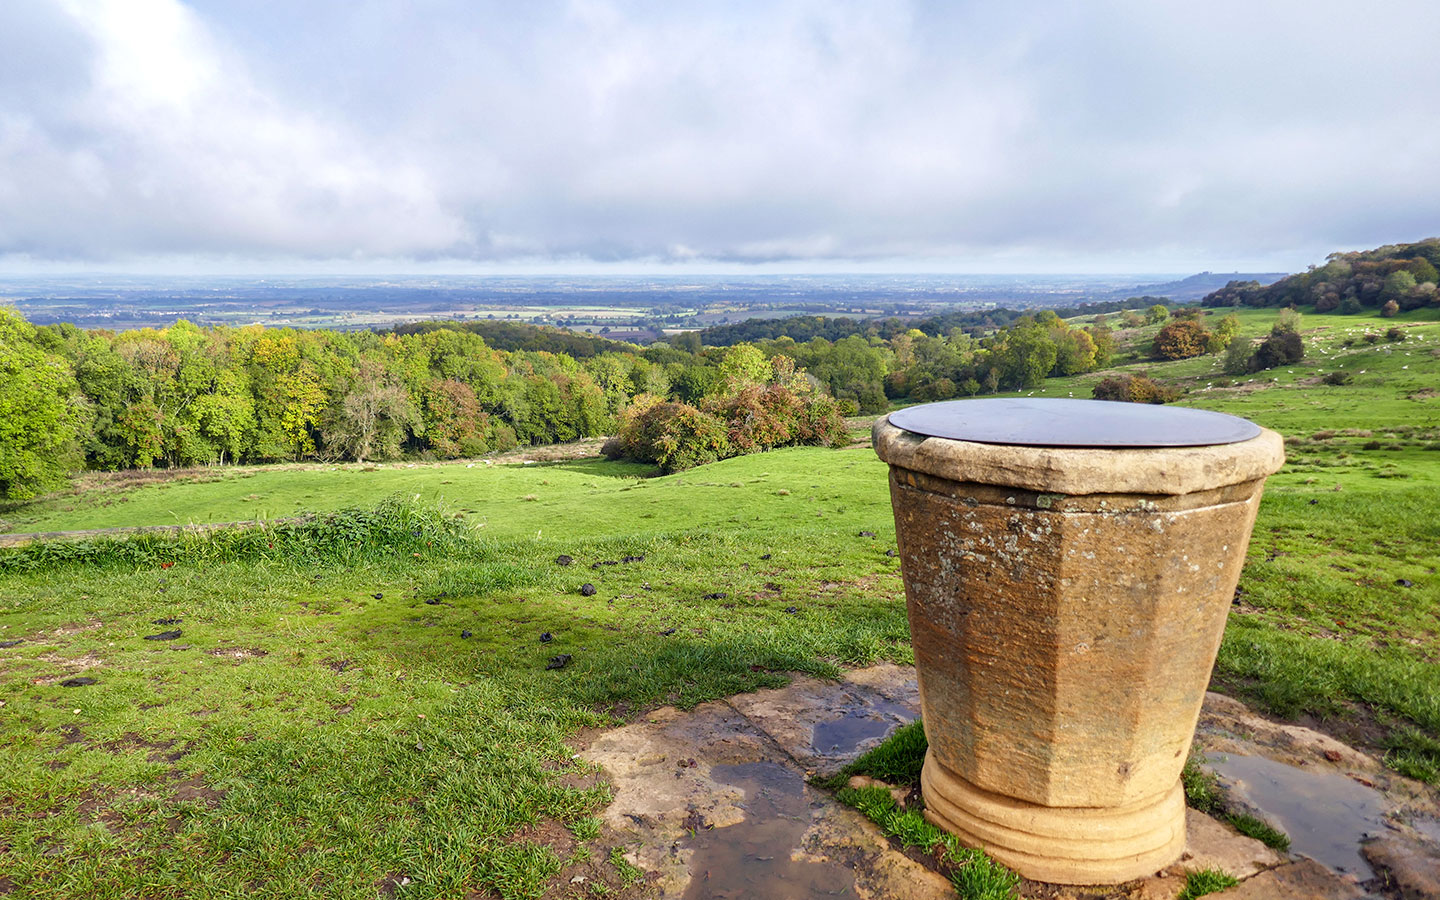 Views from Dovers Hill on the Cotswold Way circular walk from Chipping Campden